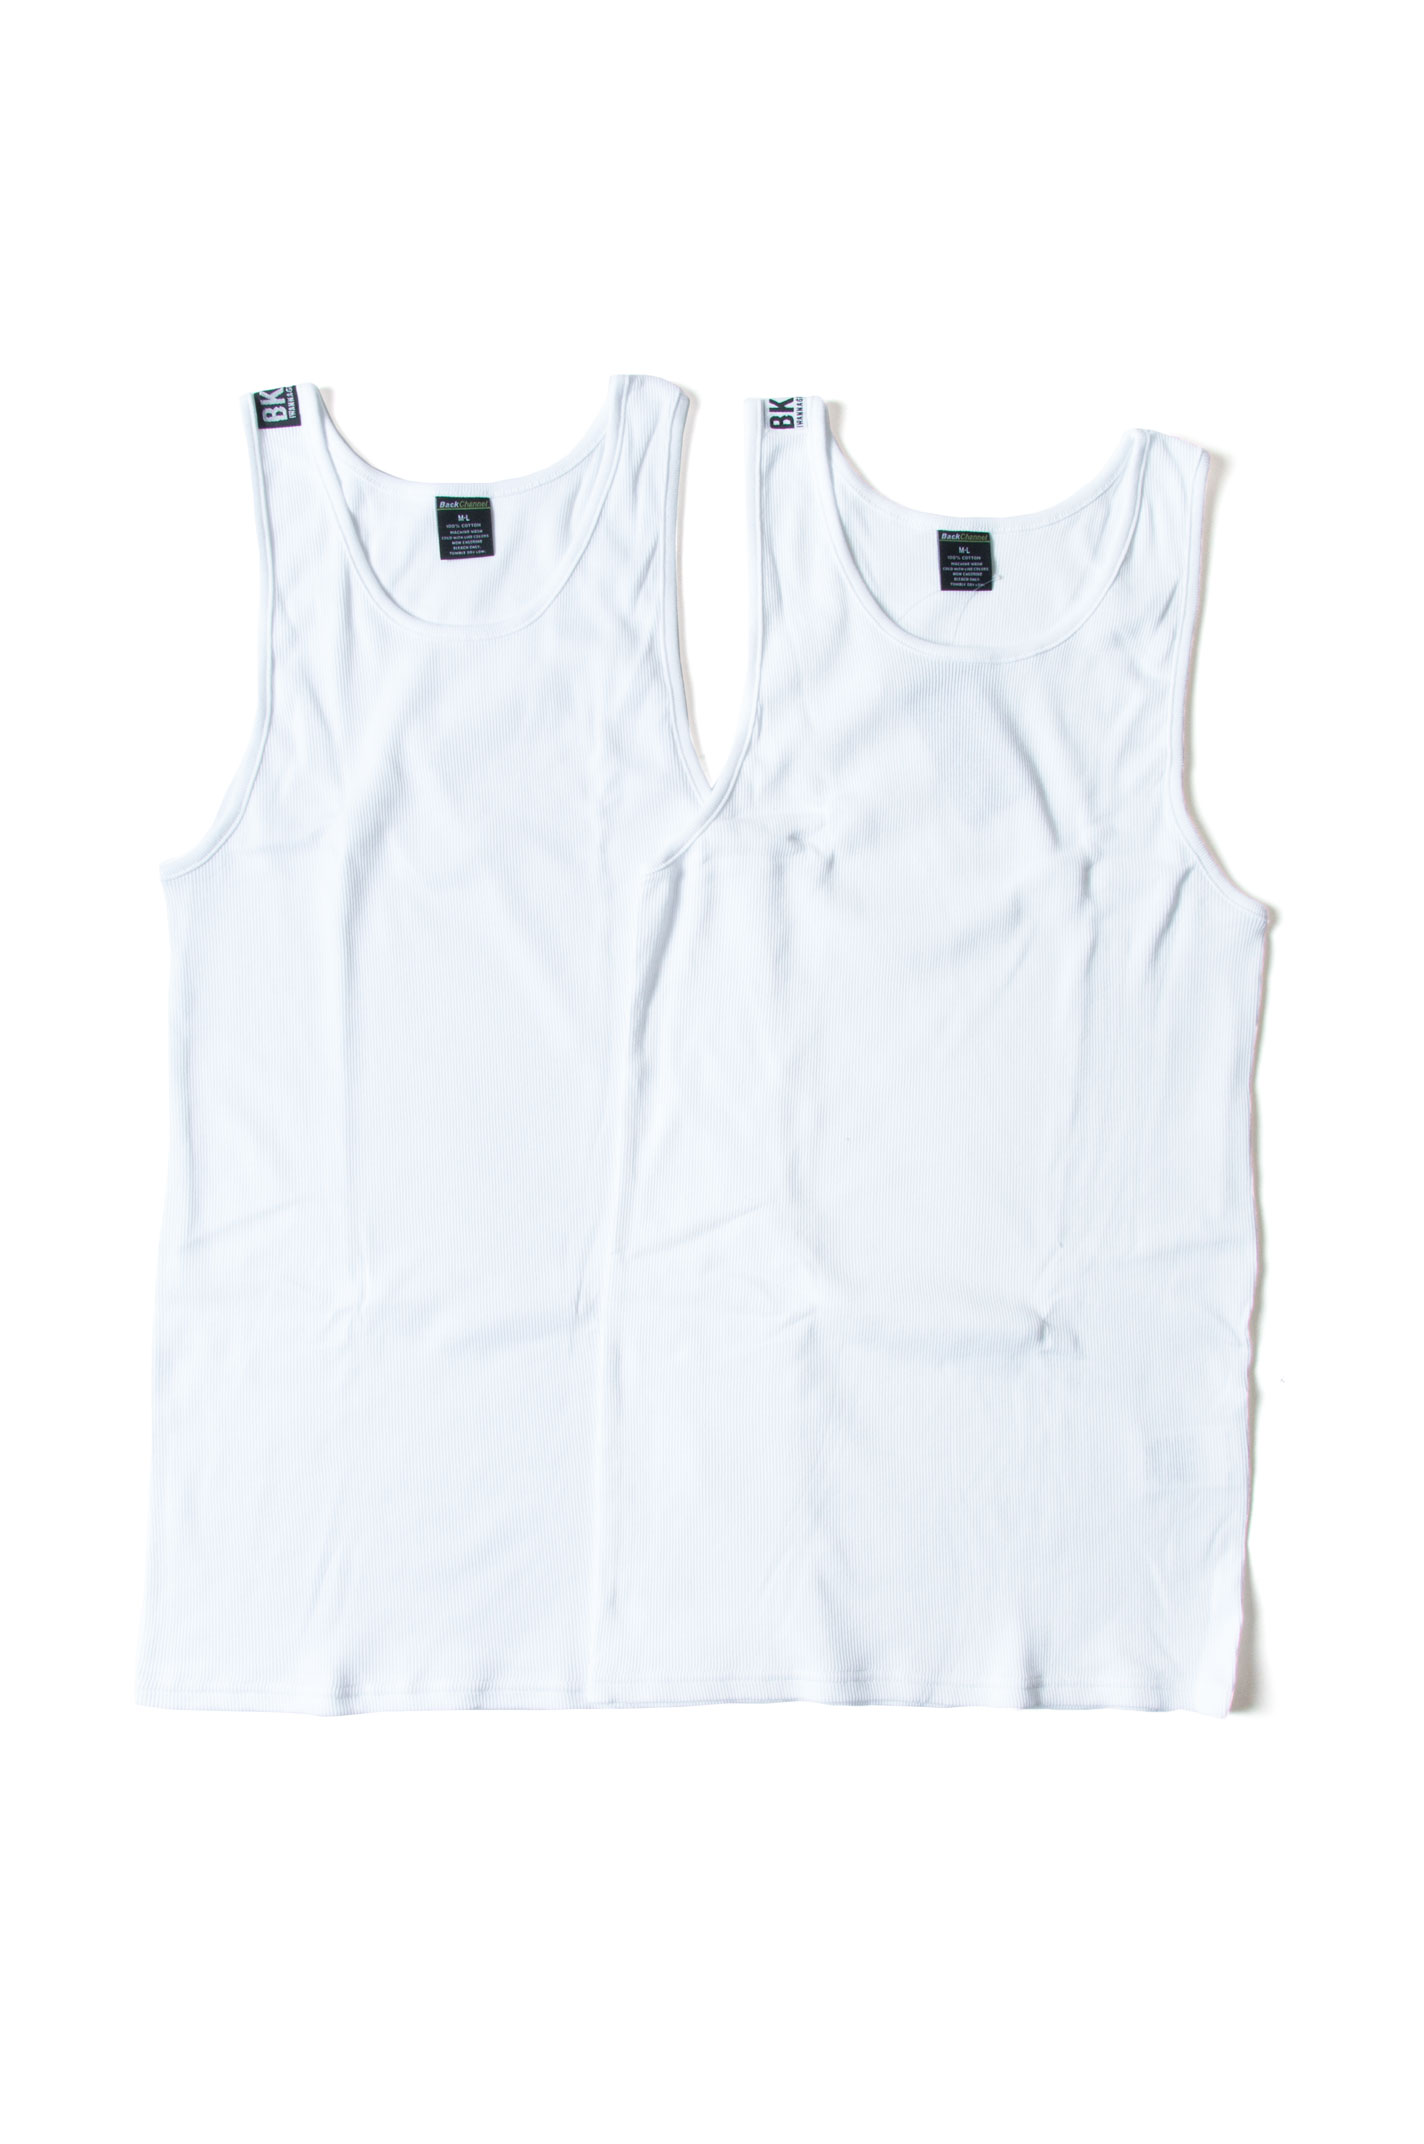 画像1: 【Back Channel】 2P TANK TOP